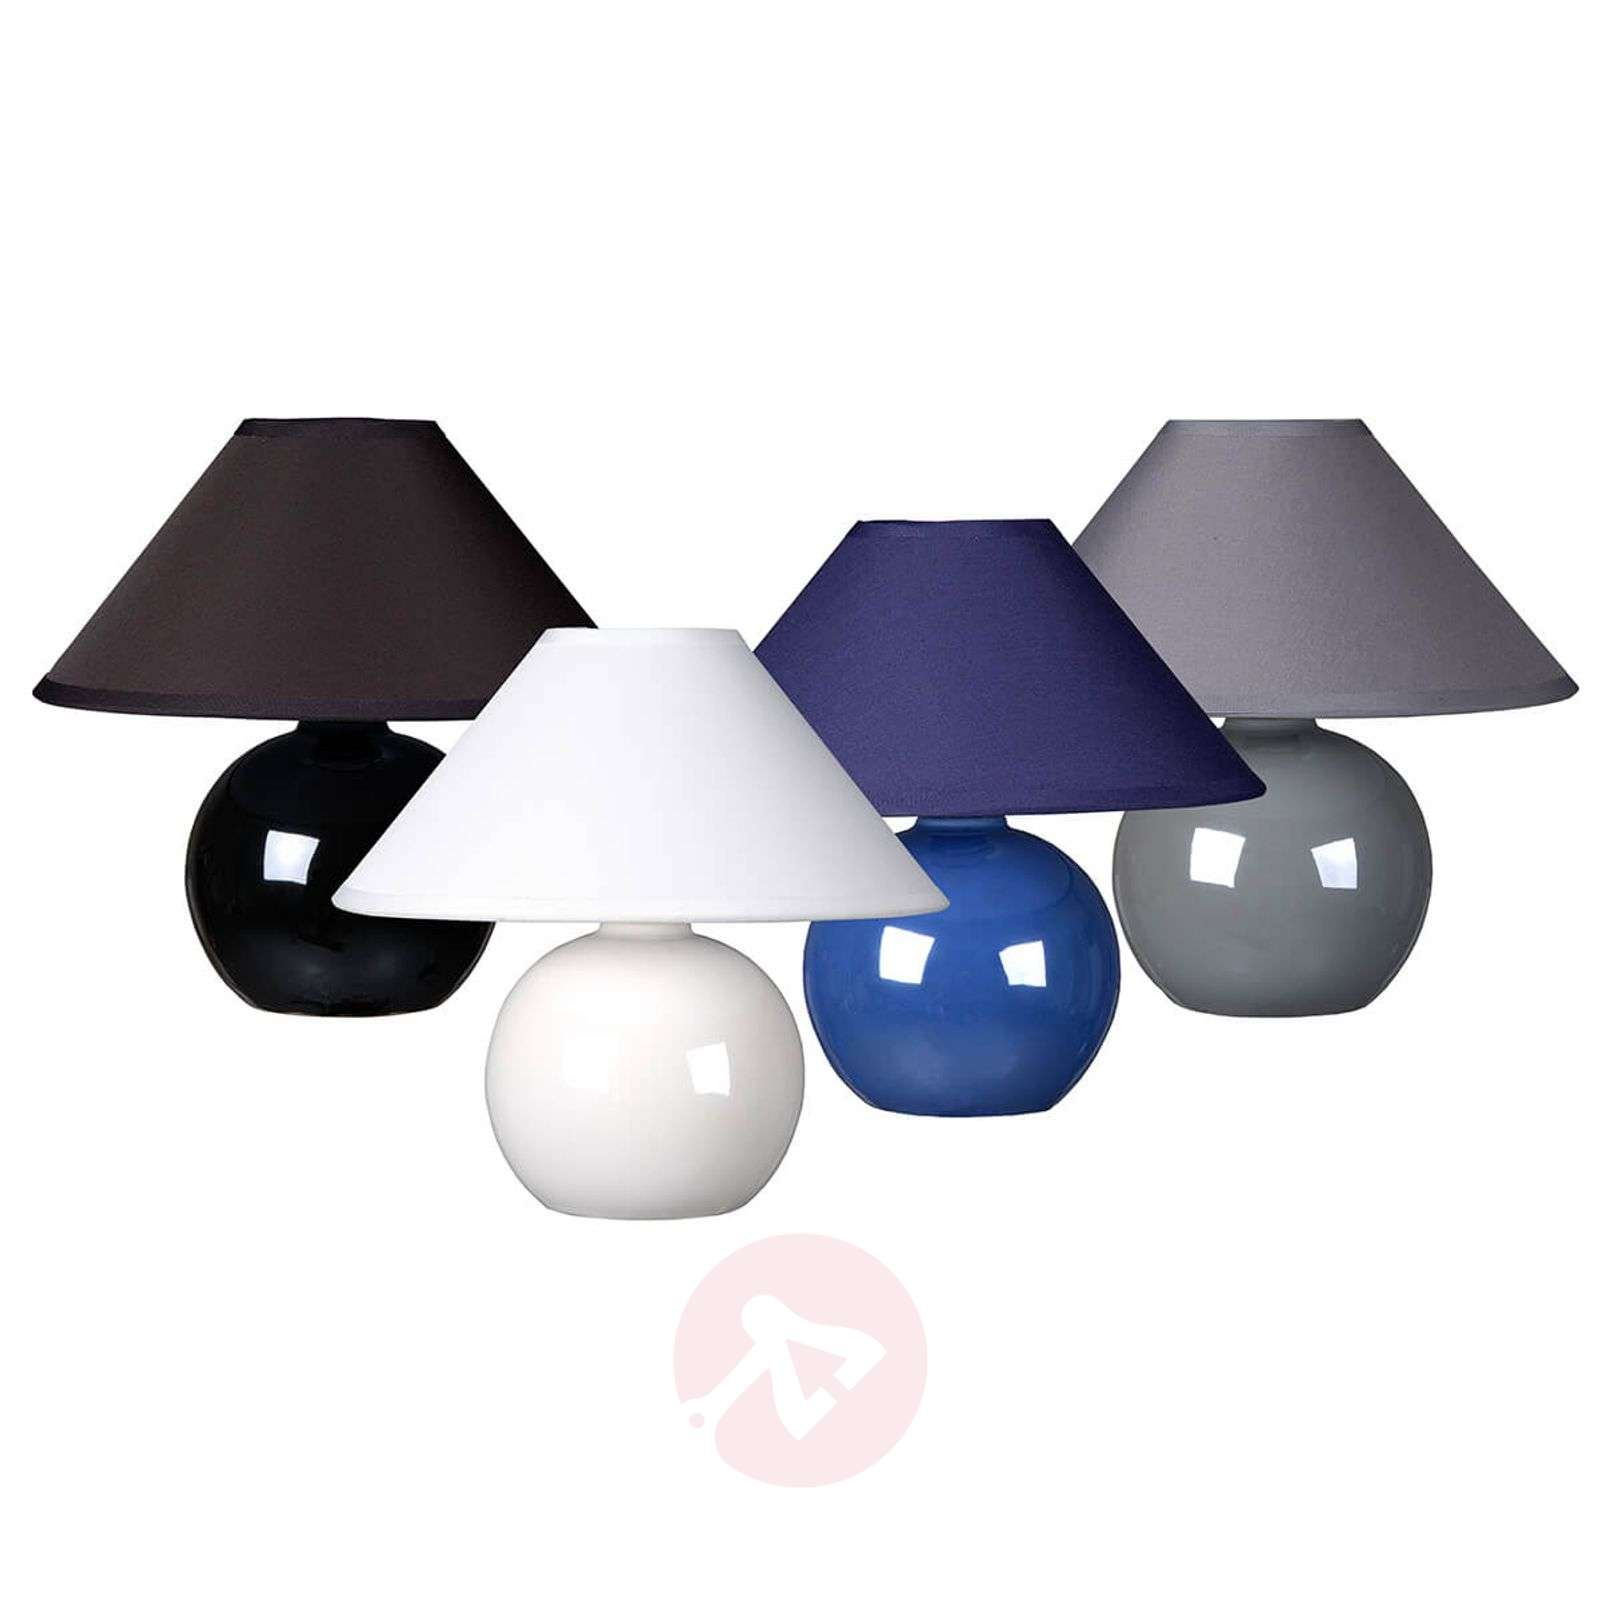 Black Faro table lamp with spherical base-6054943-01